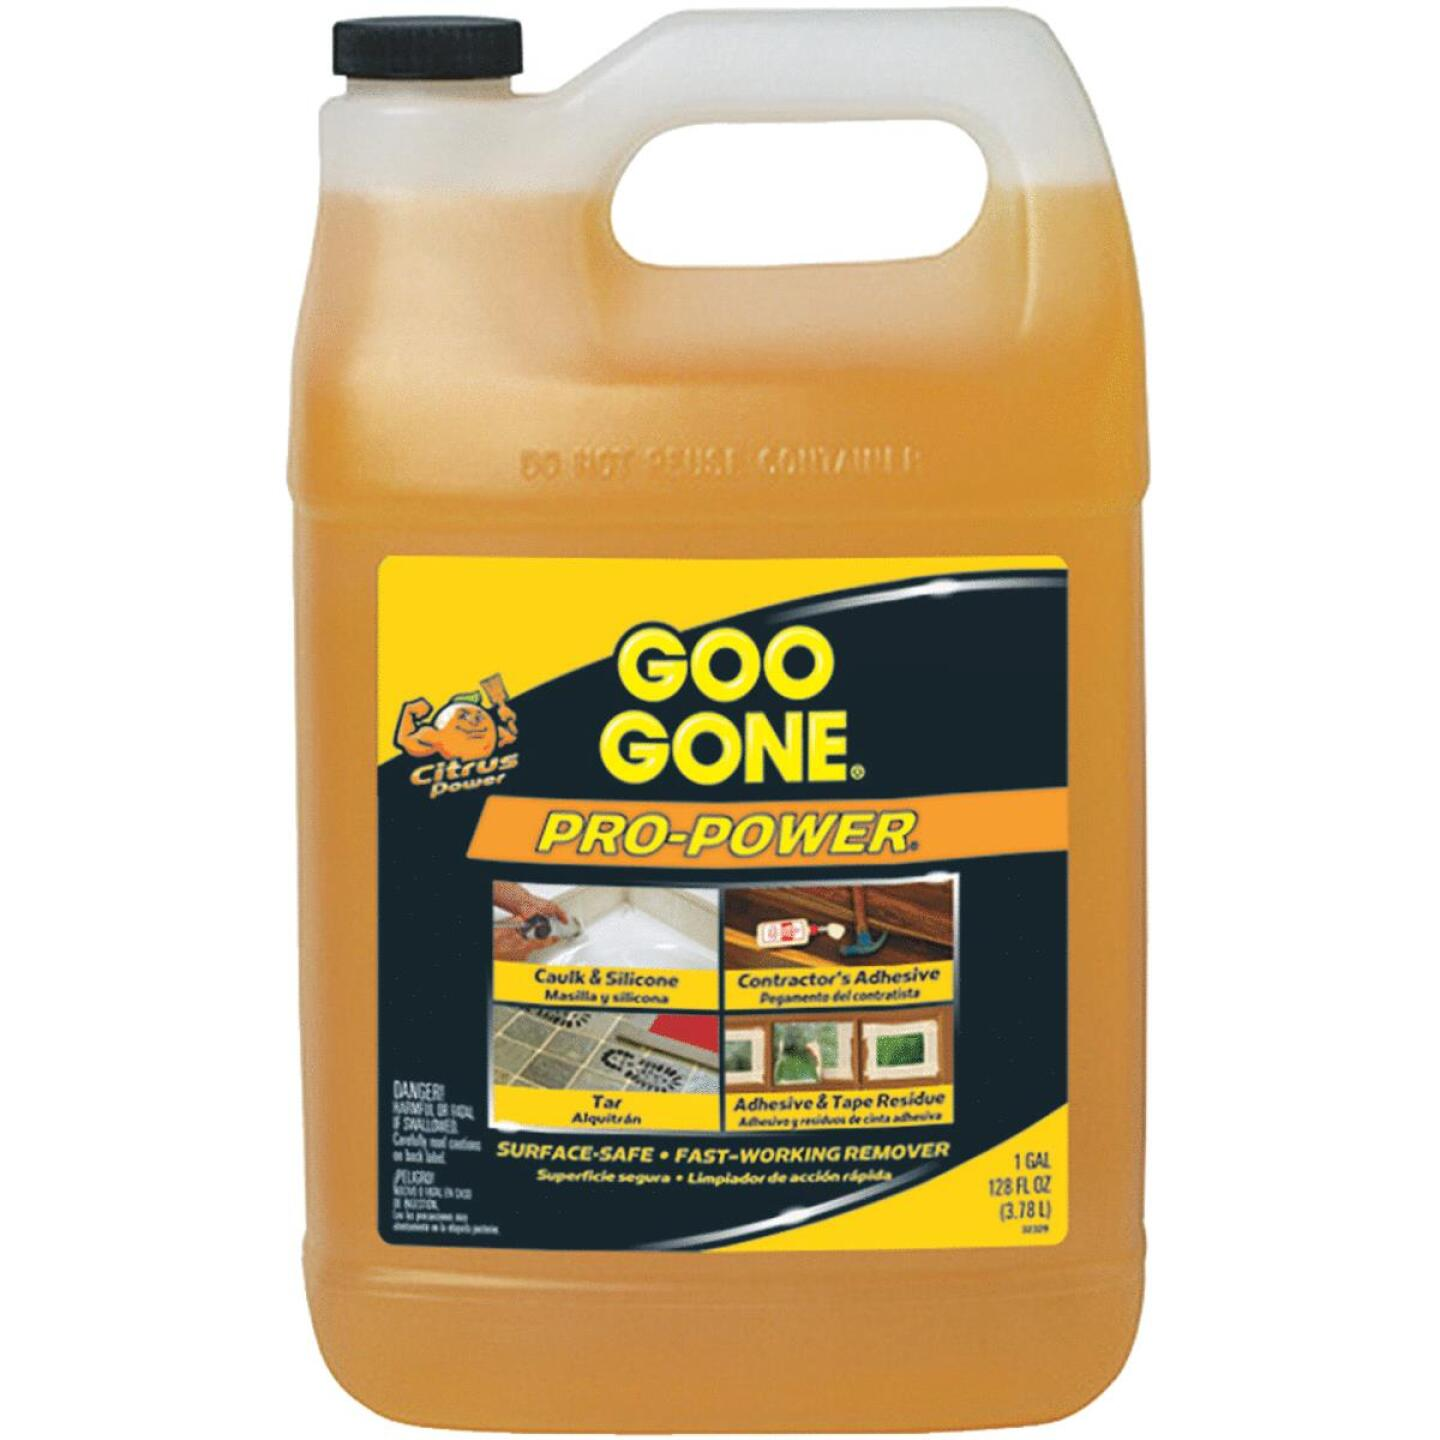 Goo Gone 1 Gal. Pro-Power Adhesive Remover Image 311